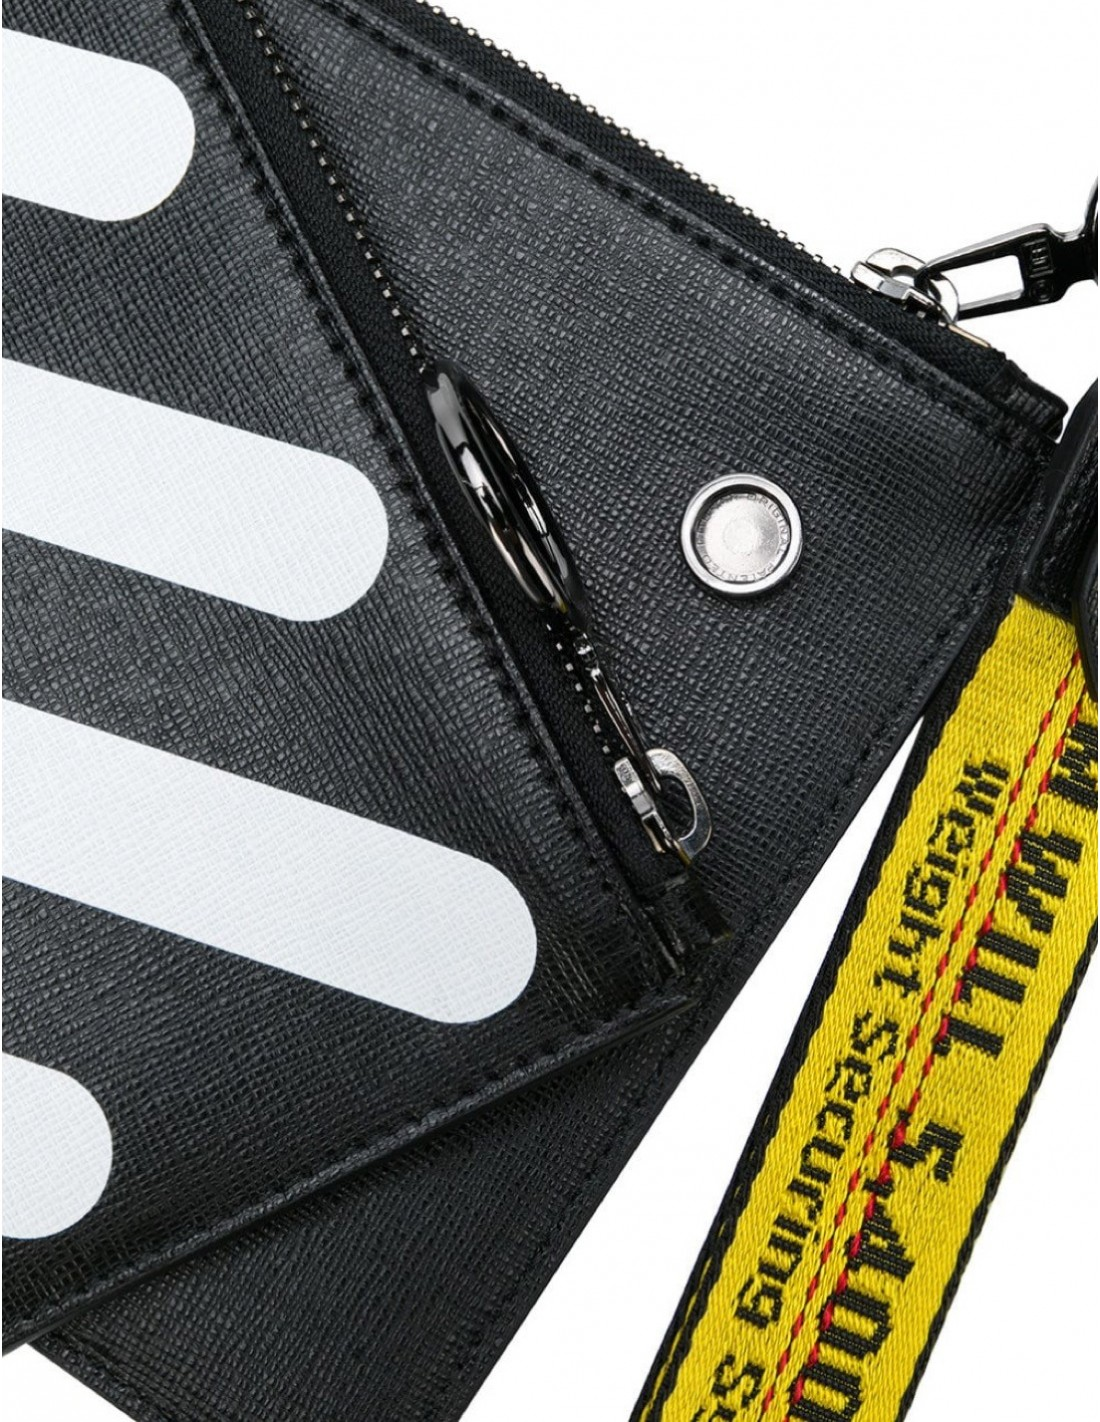 ff65f713204 OFF-WHITE c o Virgil Abloh diad double flat pouch in black and white